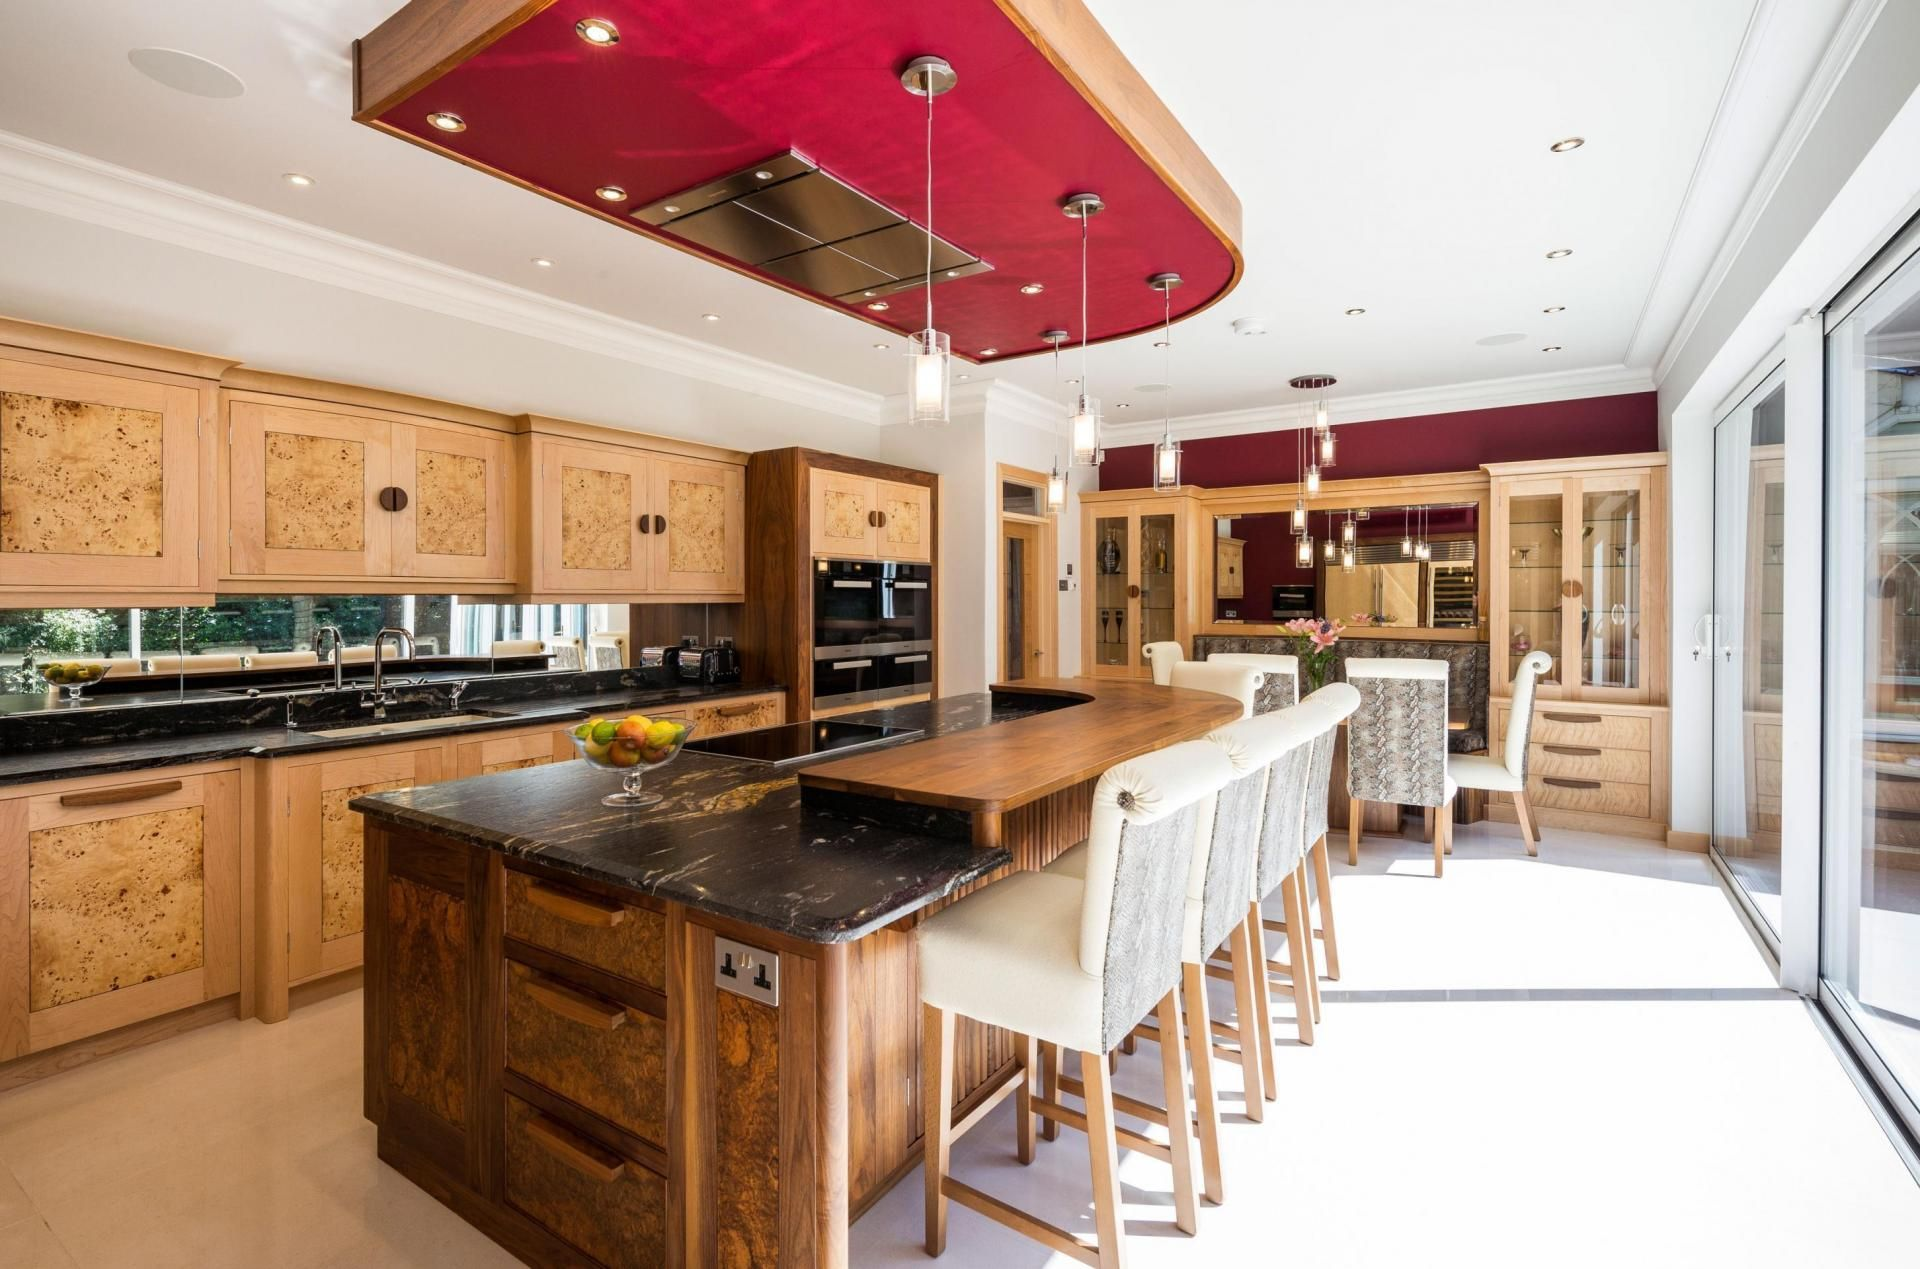 Luxury Kitchens Made With Passionmy Fathers Heart  Our Captivating Kitchen Design Sheffield Inspiration